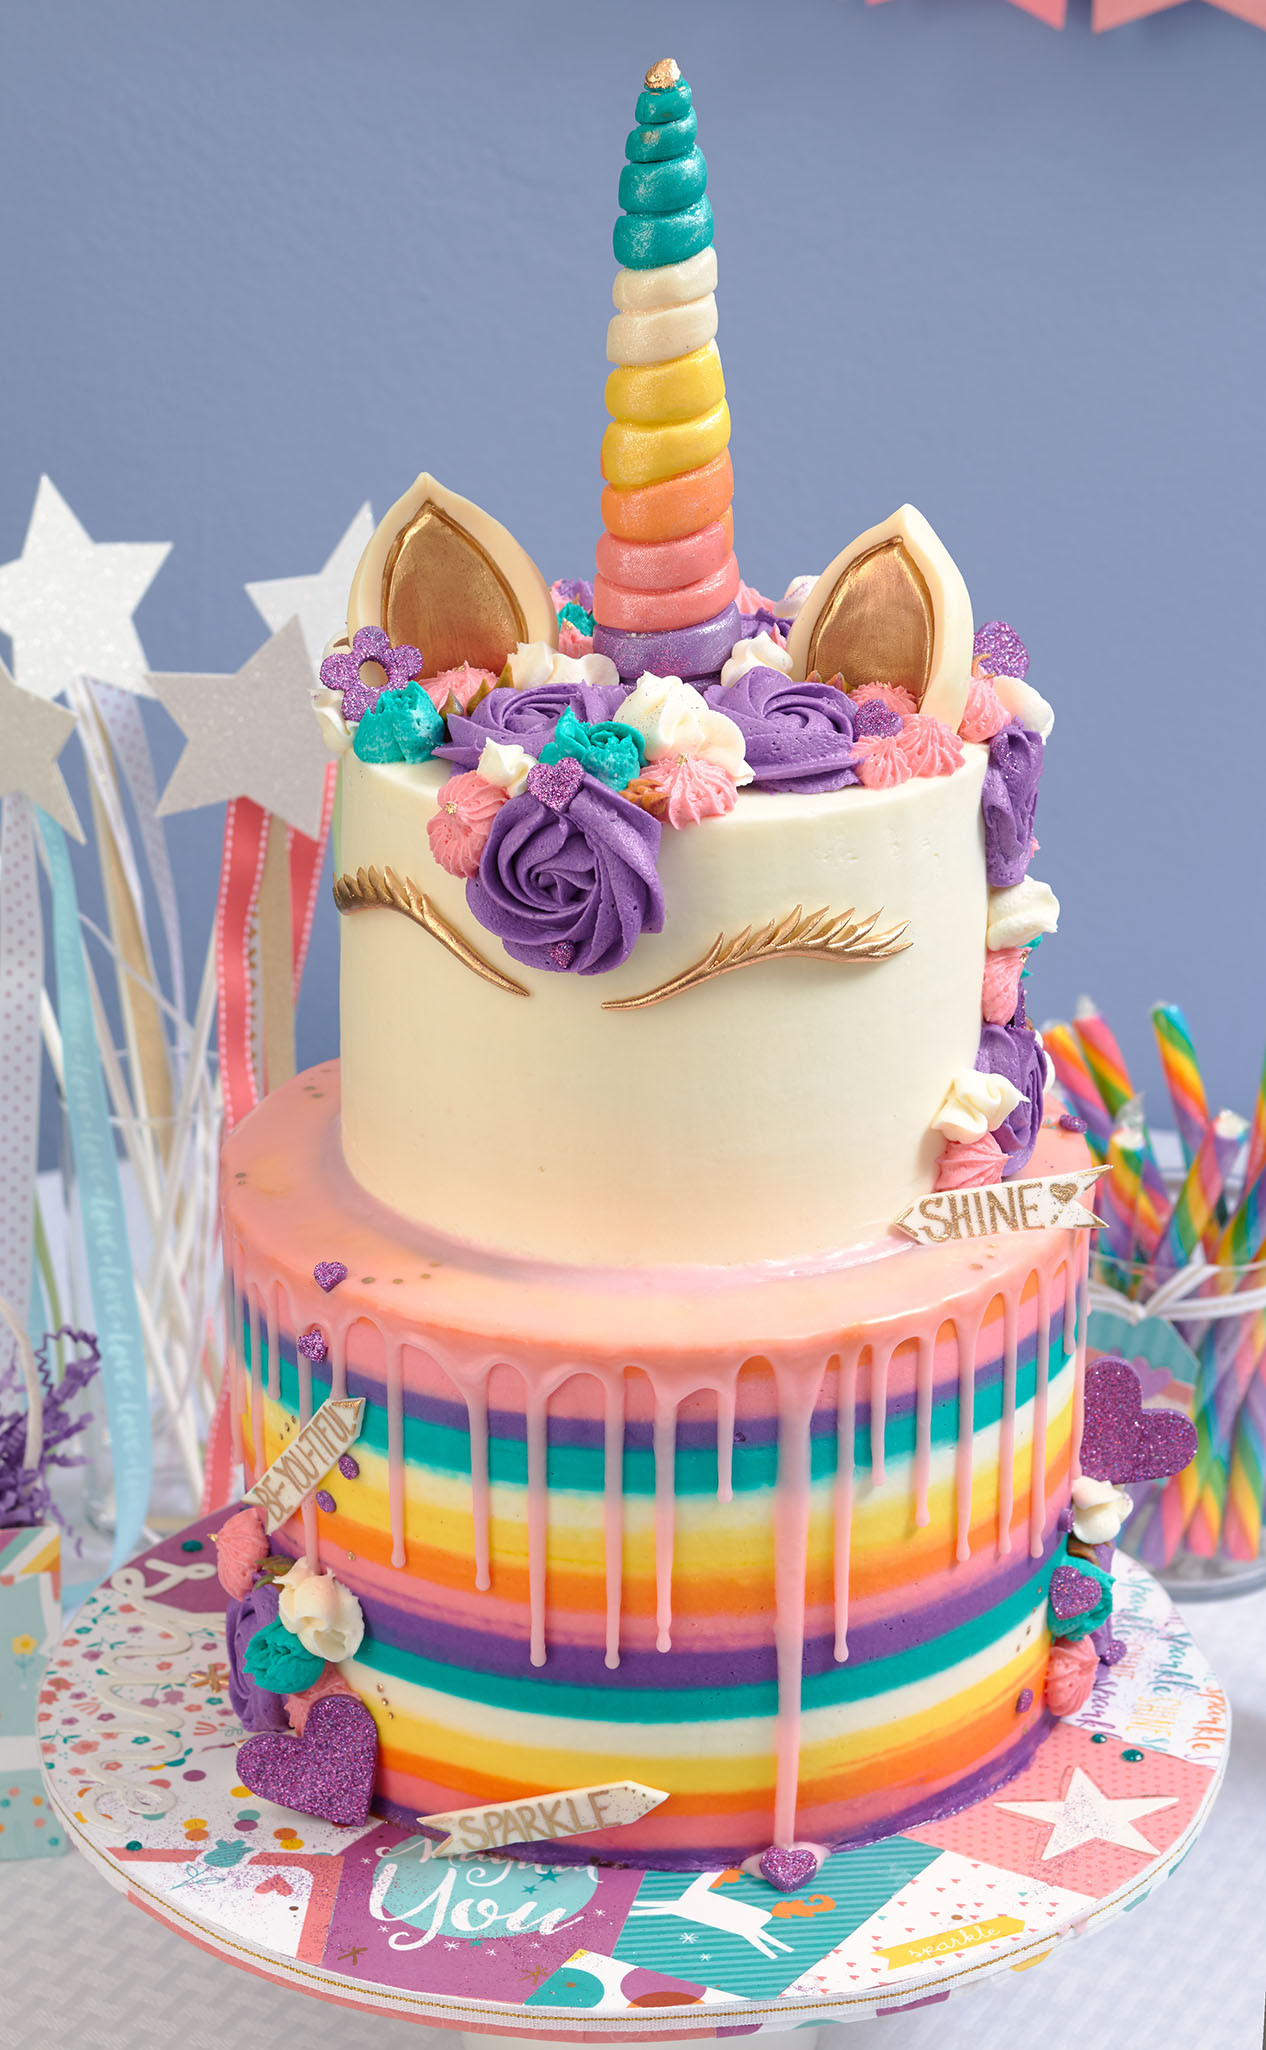 Best ideas about Unicorn Birthday Cake . Save or Pin This Unicorn Party Takes the Cake Now.